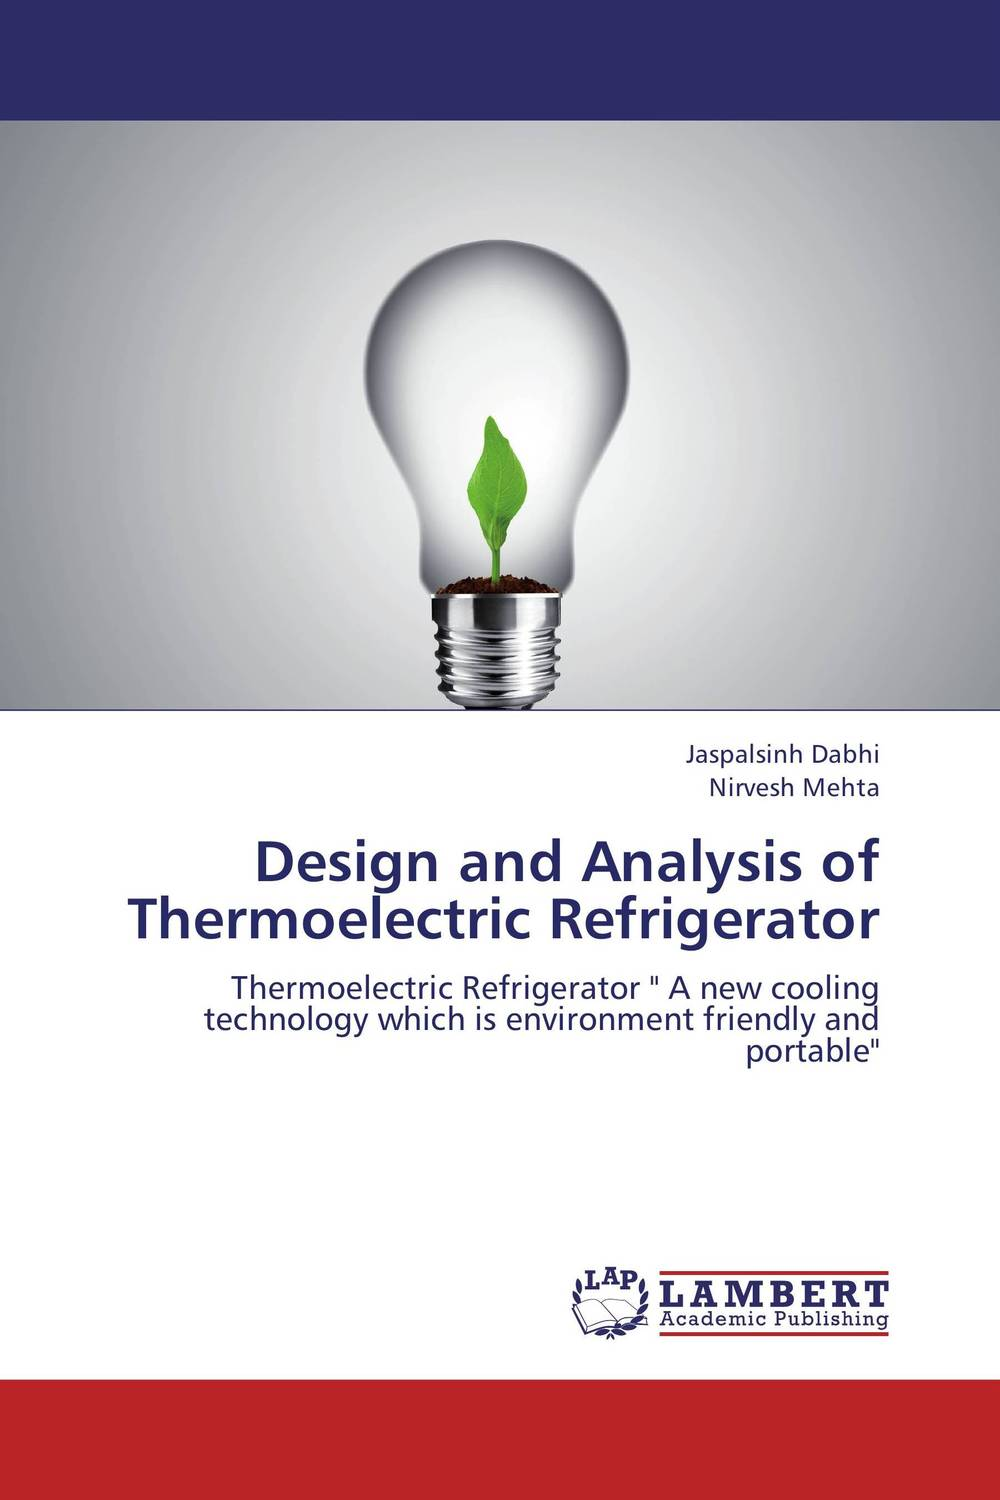 Design and Analysis of Thermoelectric Refrigerator complete dynamic analysis of stewart platform based on workspace